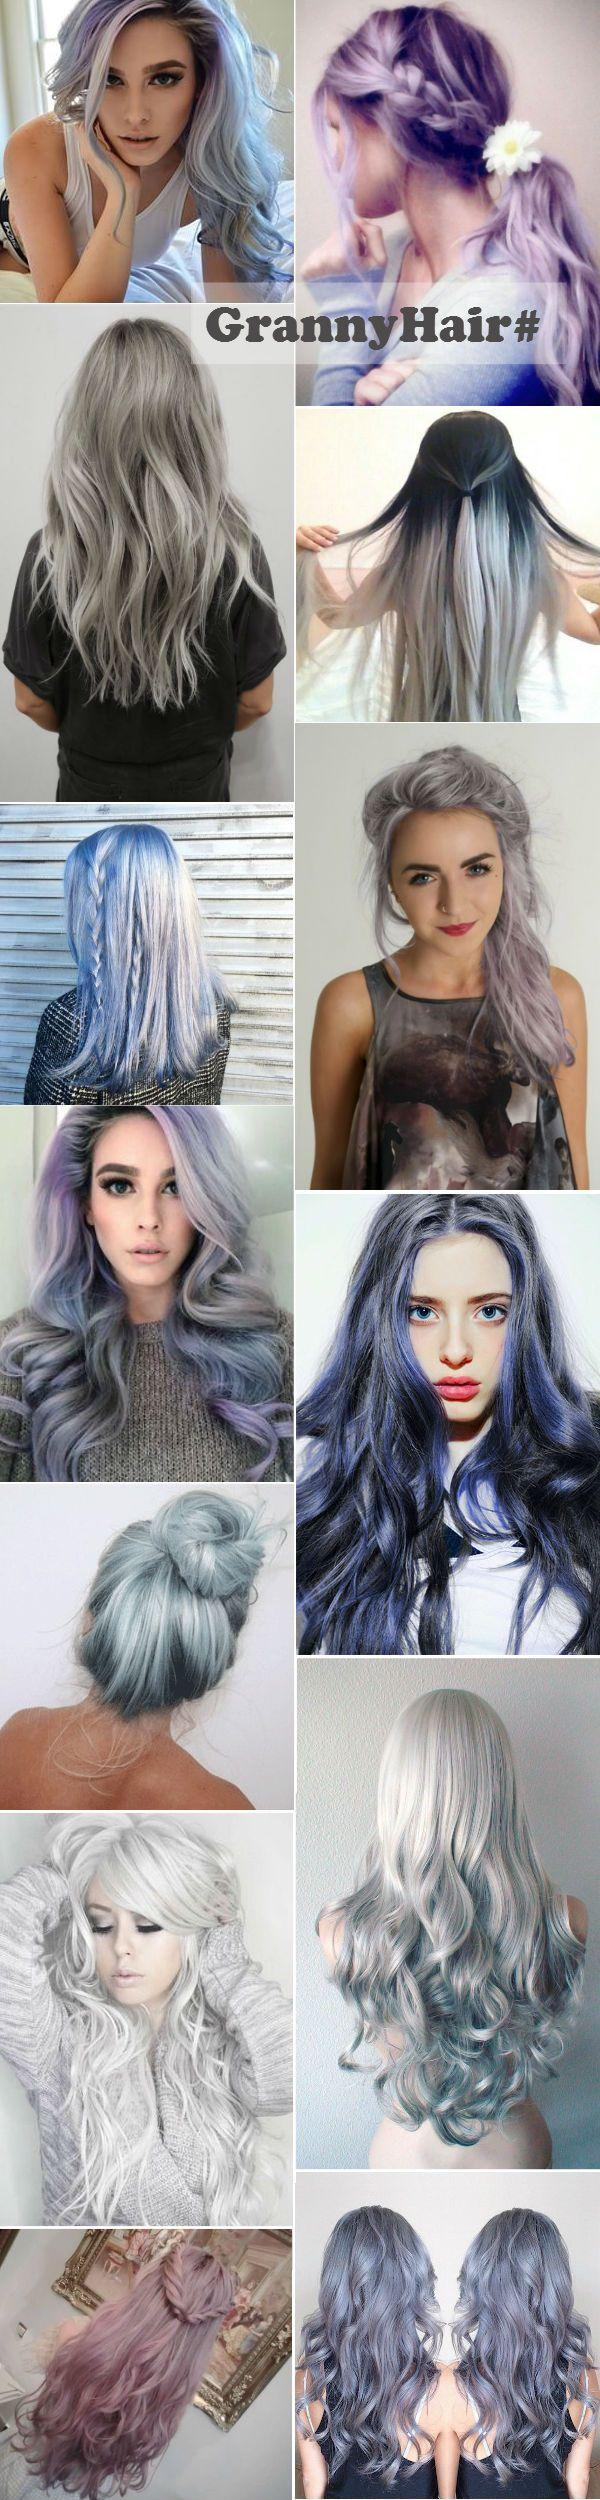 Wedding - 10 Reasons To Follow The Fabulous Gray Hairstyles -